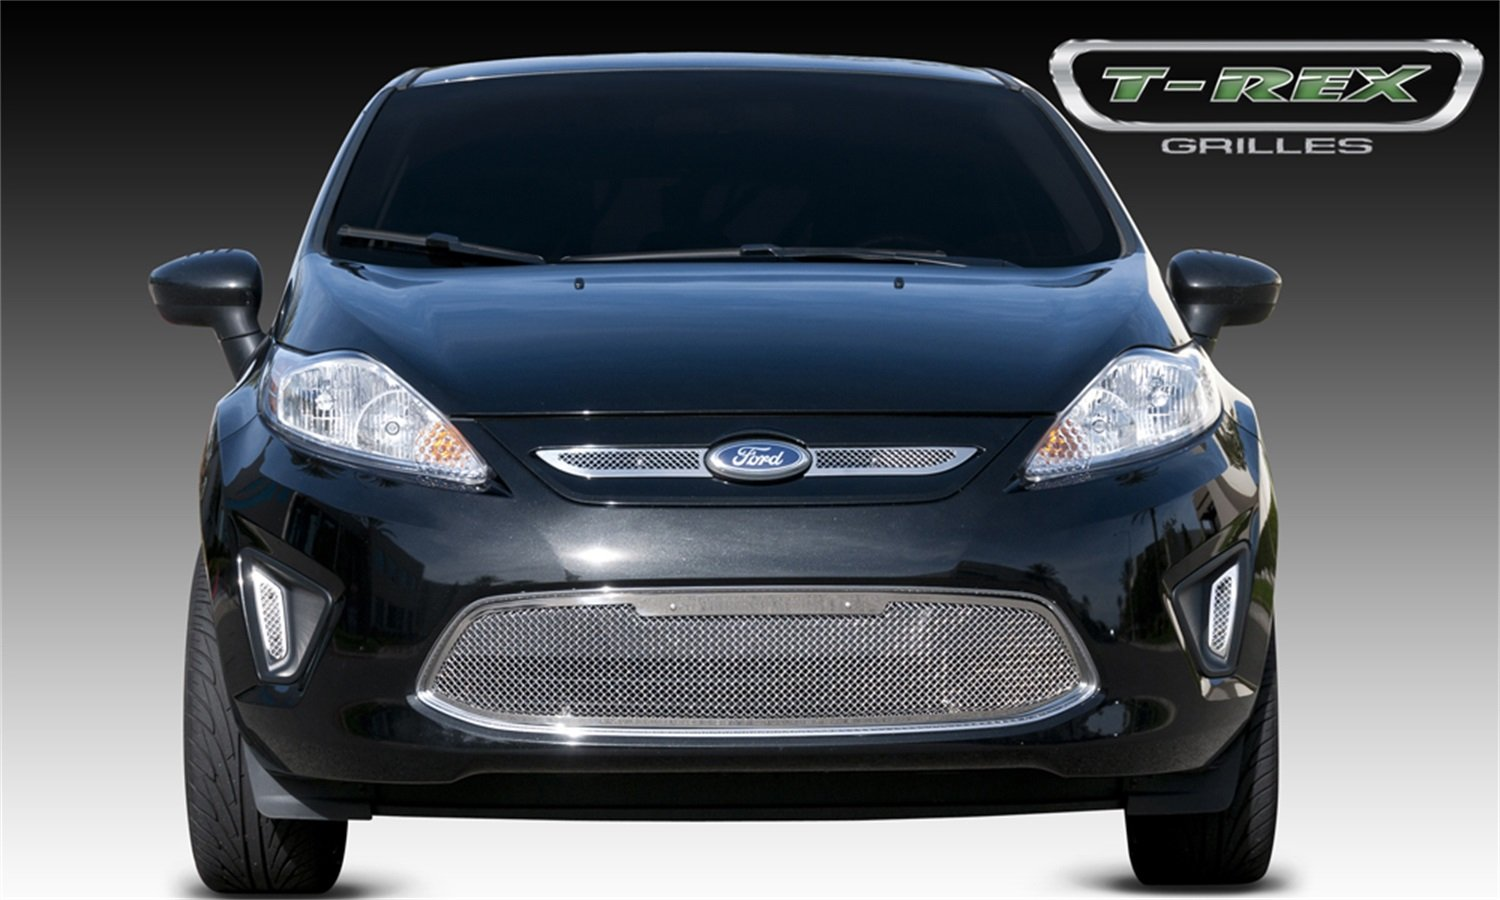 TRex Grilles 54588 Upper Class Small Mesh Stainless Polished Finish Grille Overlay for Ford Fiesta